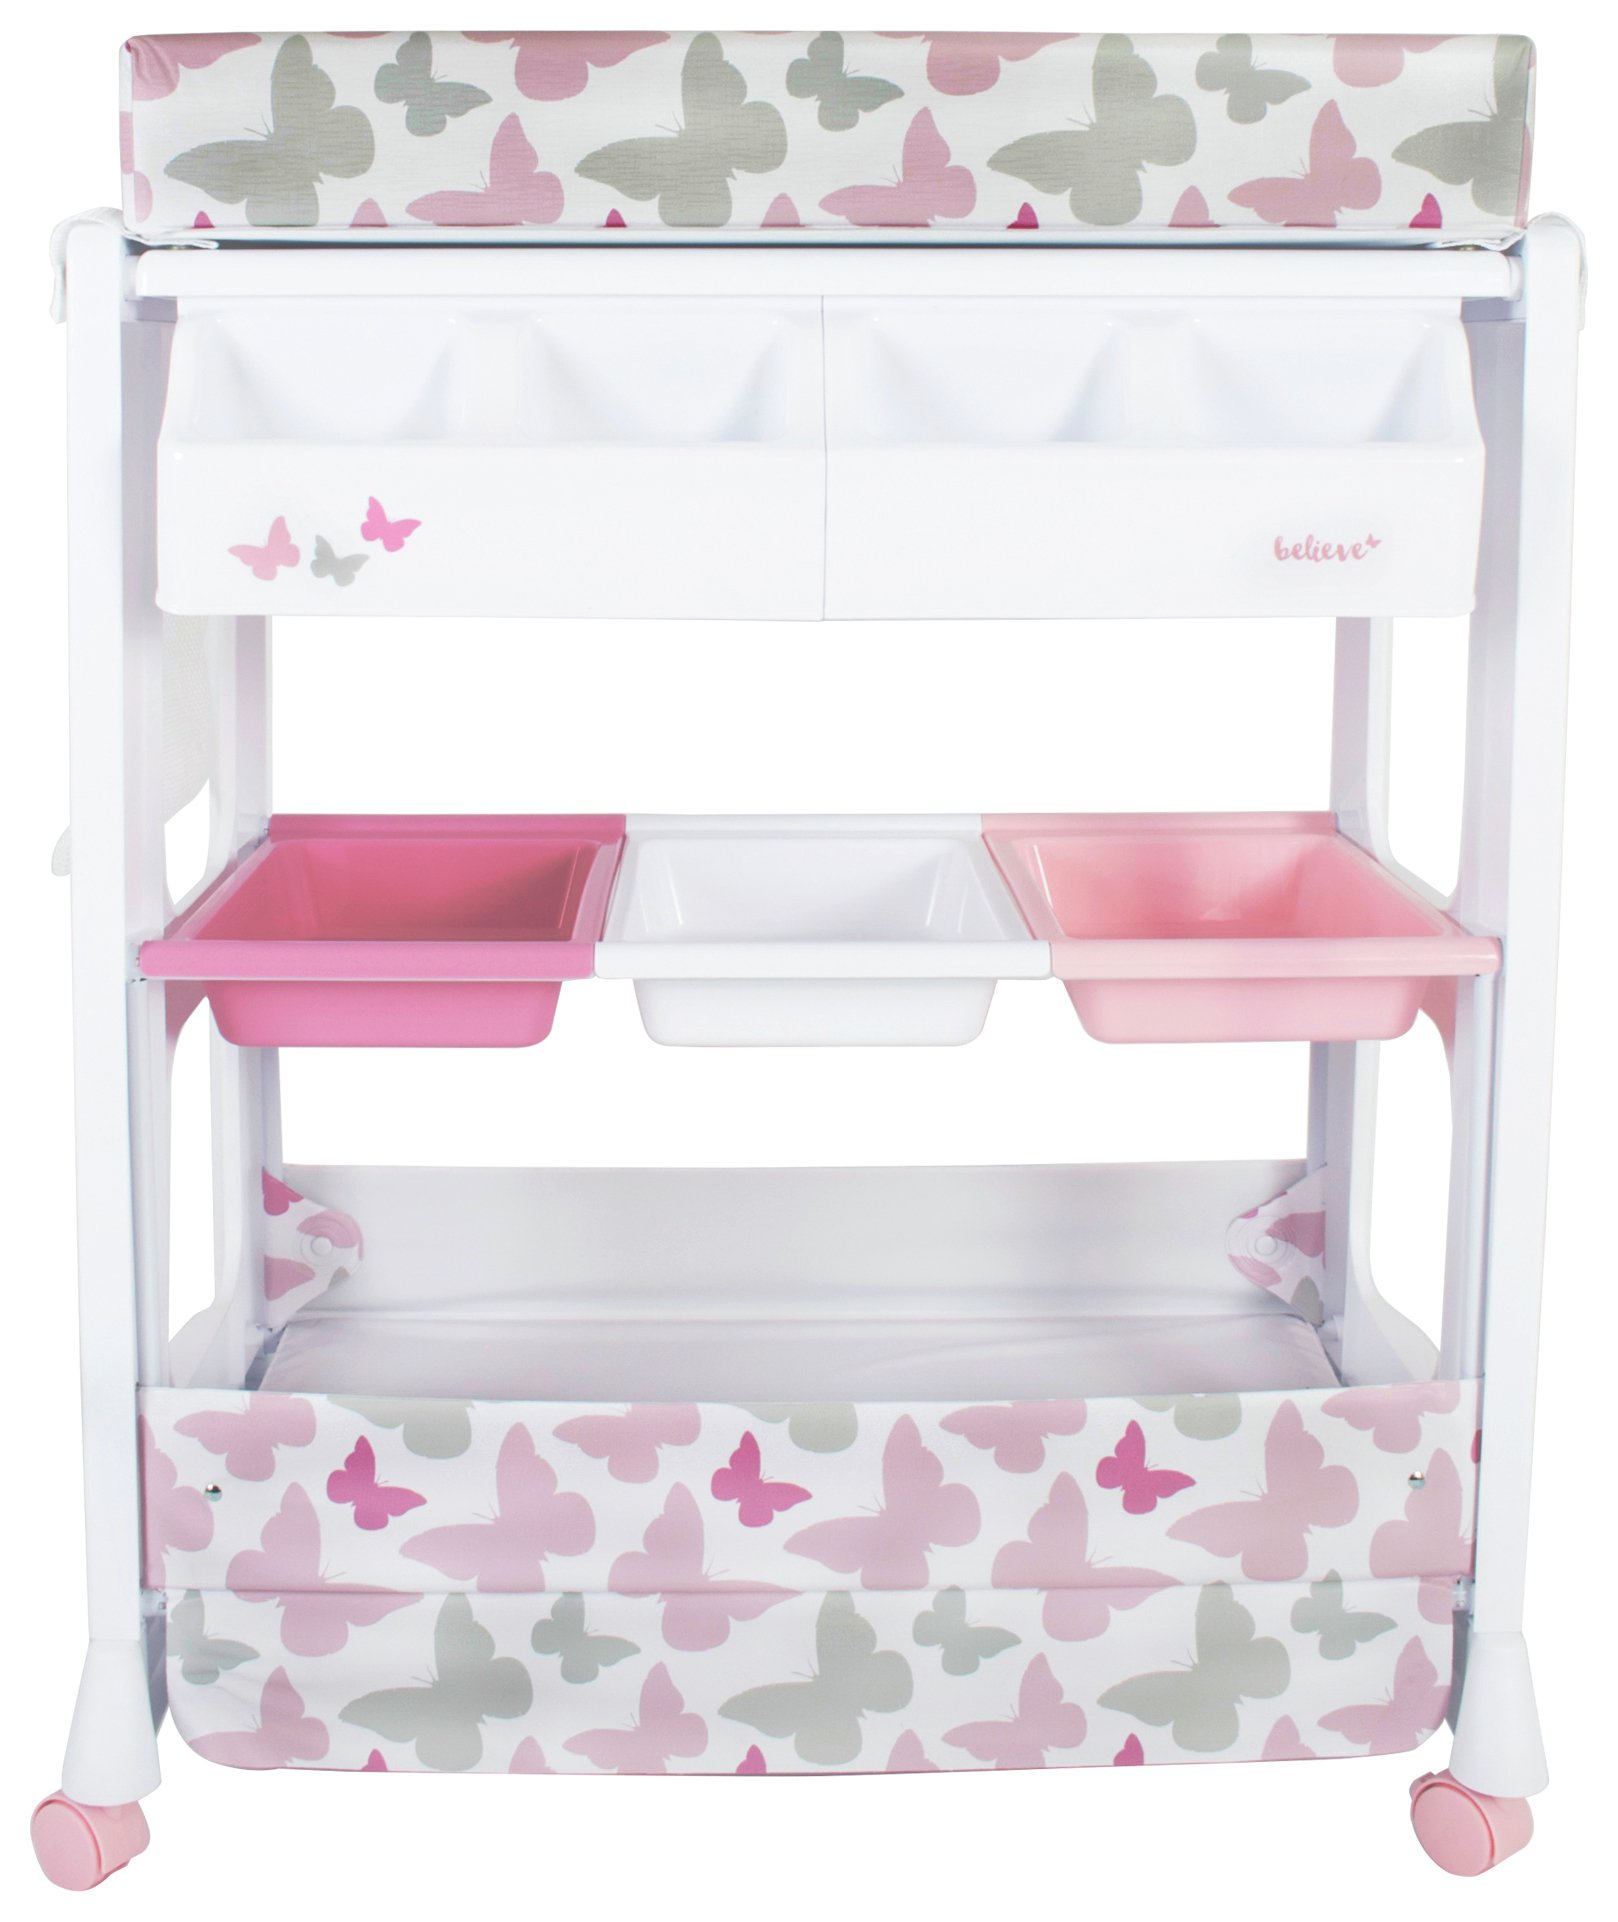 My Babiie Changing Unit - Pink Butterfly